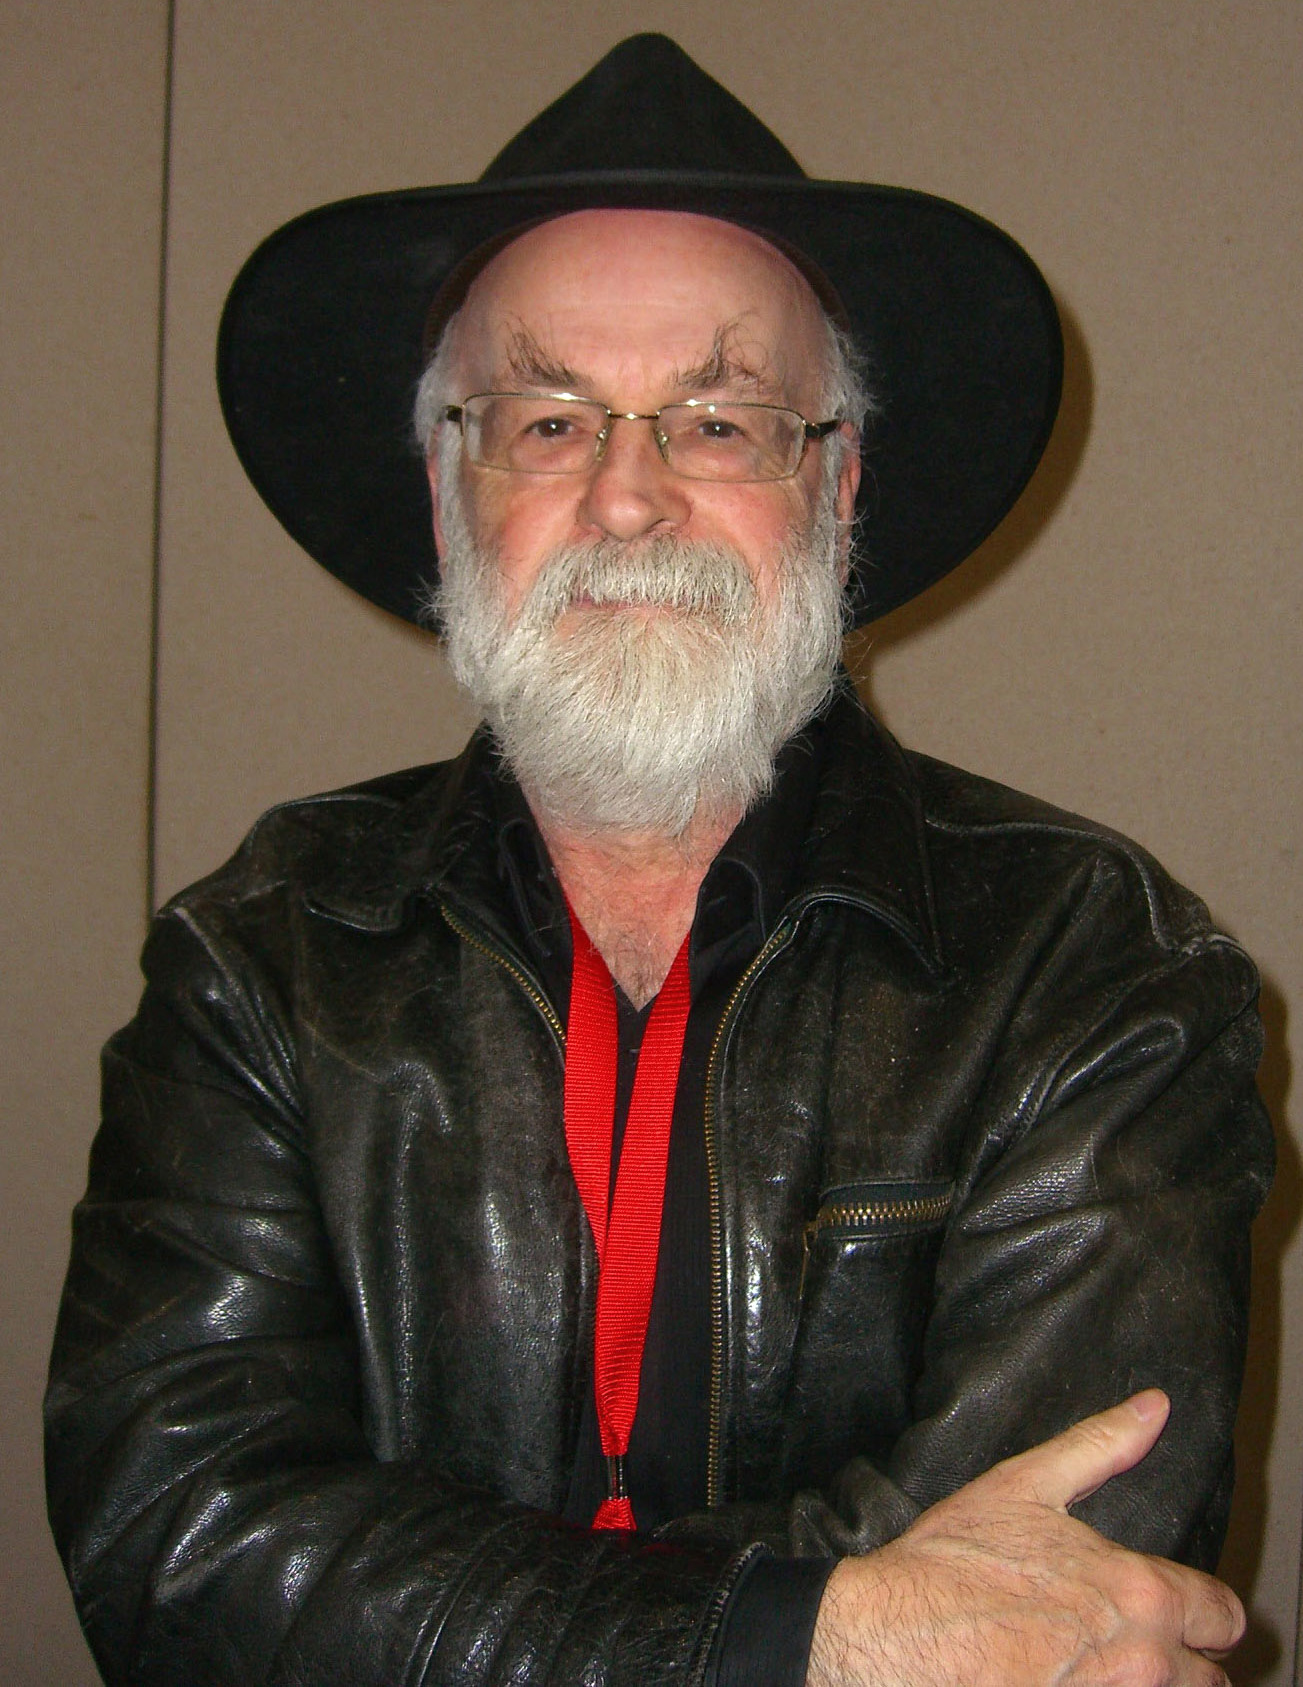 TERRY PRATCHETT - Wikipedia, the free encyclopedia